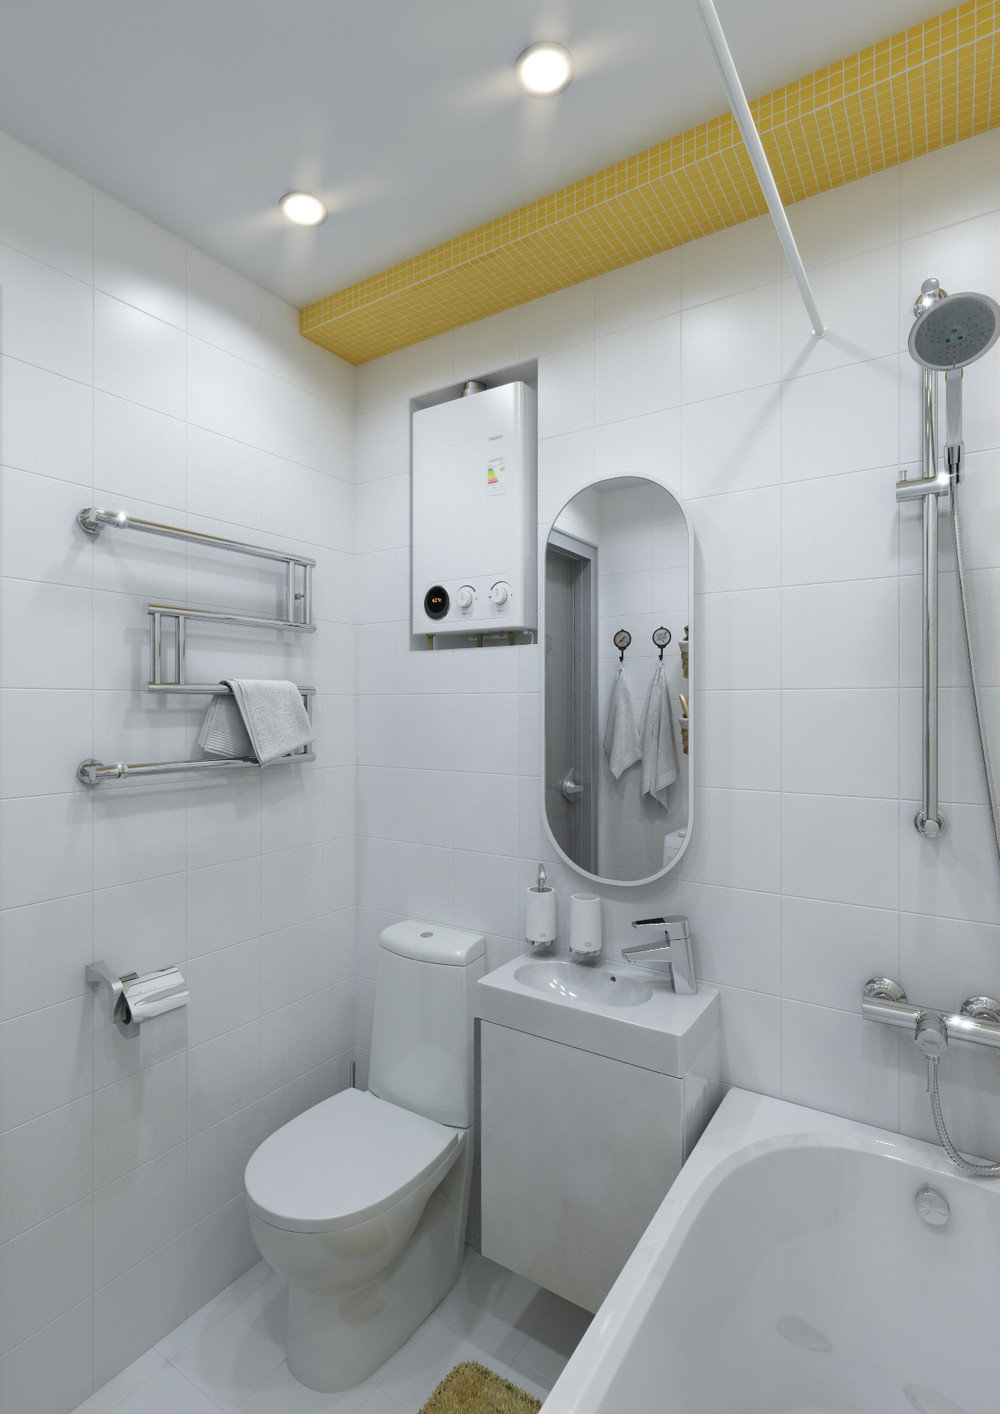 4 inspiring home designs under 300 square feet with floor for Tiny toilet ideas